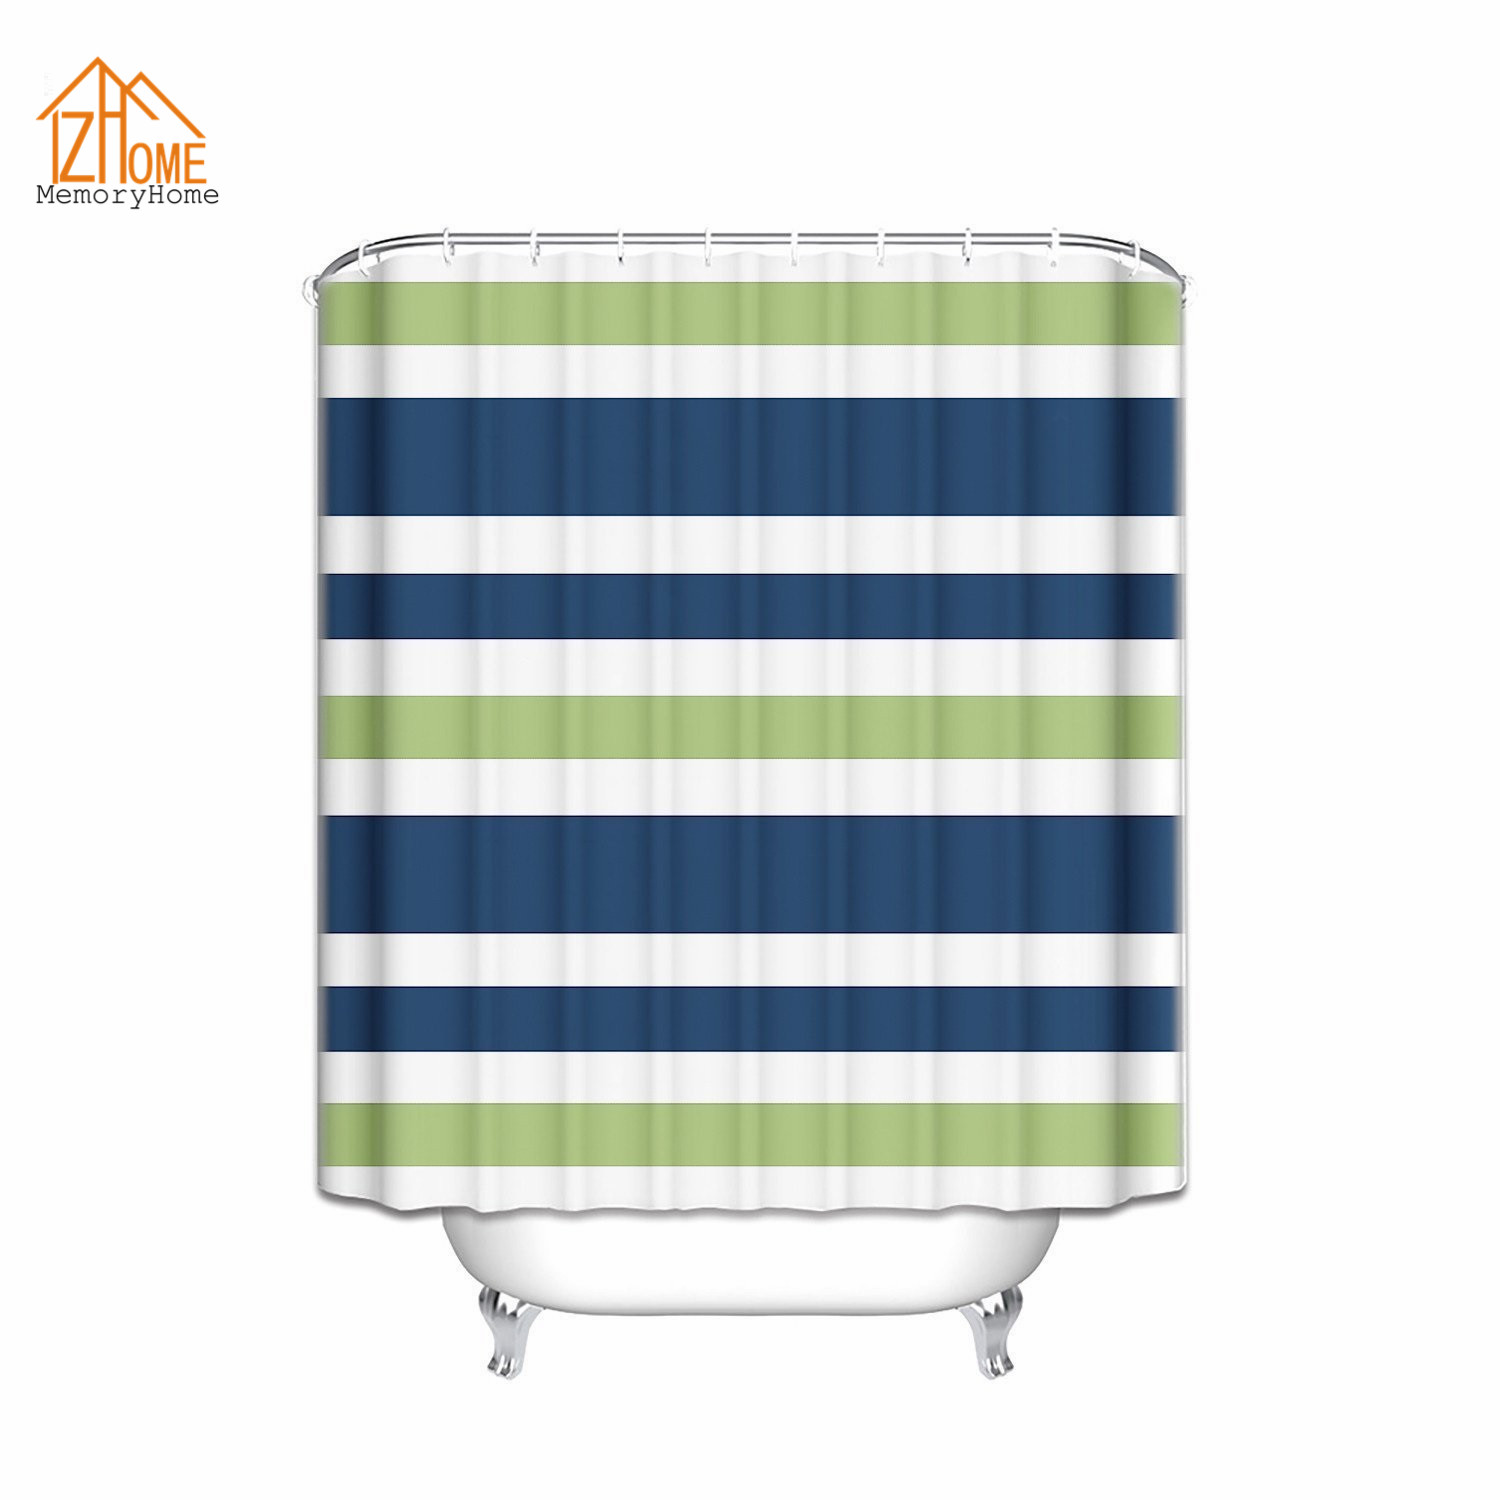 Blue and green striped shower curtain - Memory Home Kids Bathroom Waterproof Fabric Polyester Bath Stripes Shower Curtain Navy Blue Lime Green And